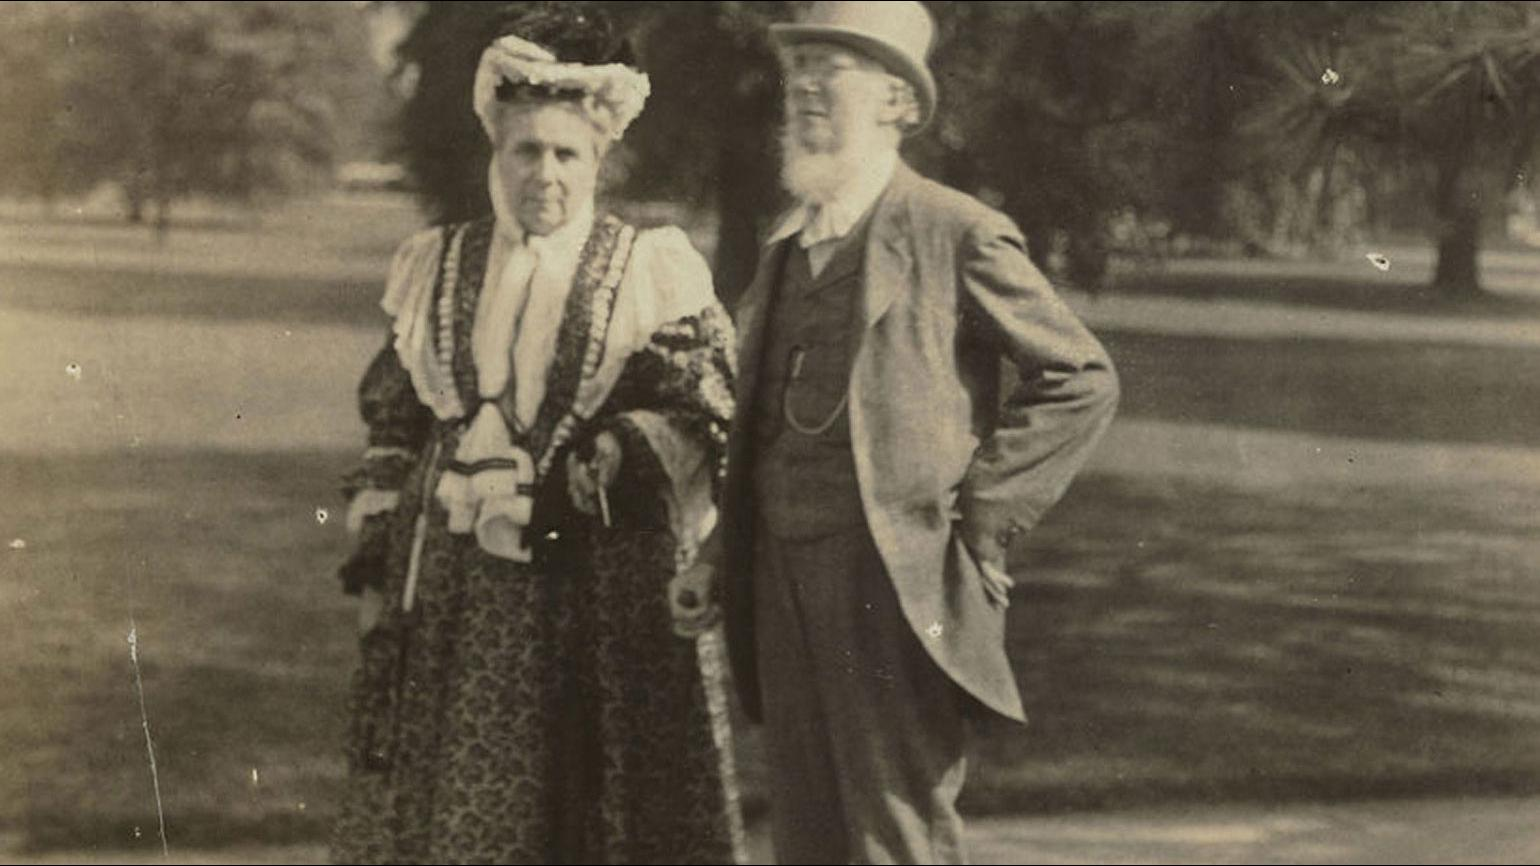 Black and white photo of Hyacinth and Joseph Hooker standing